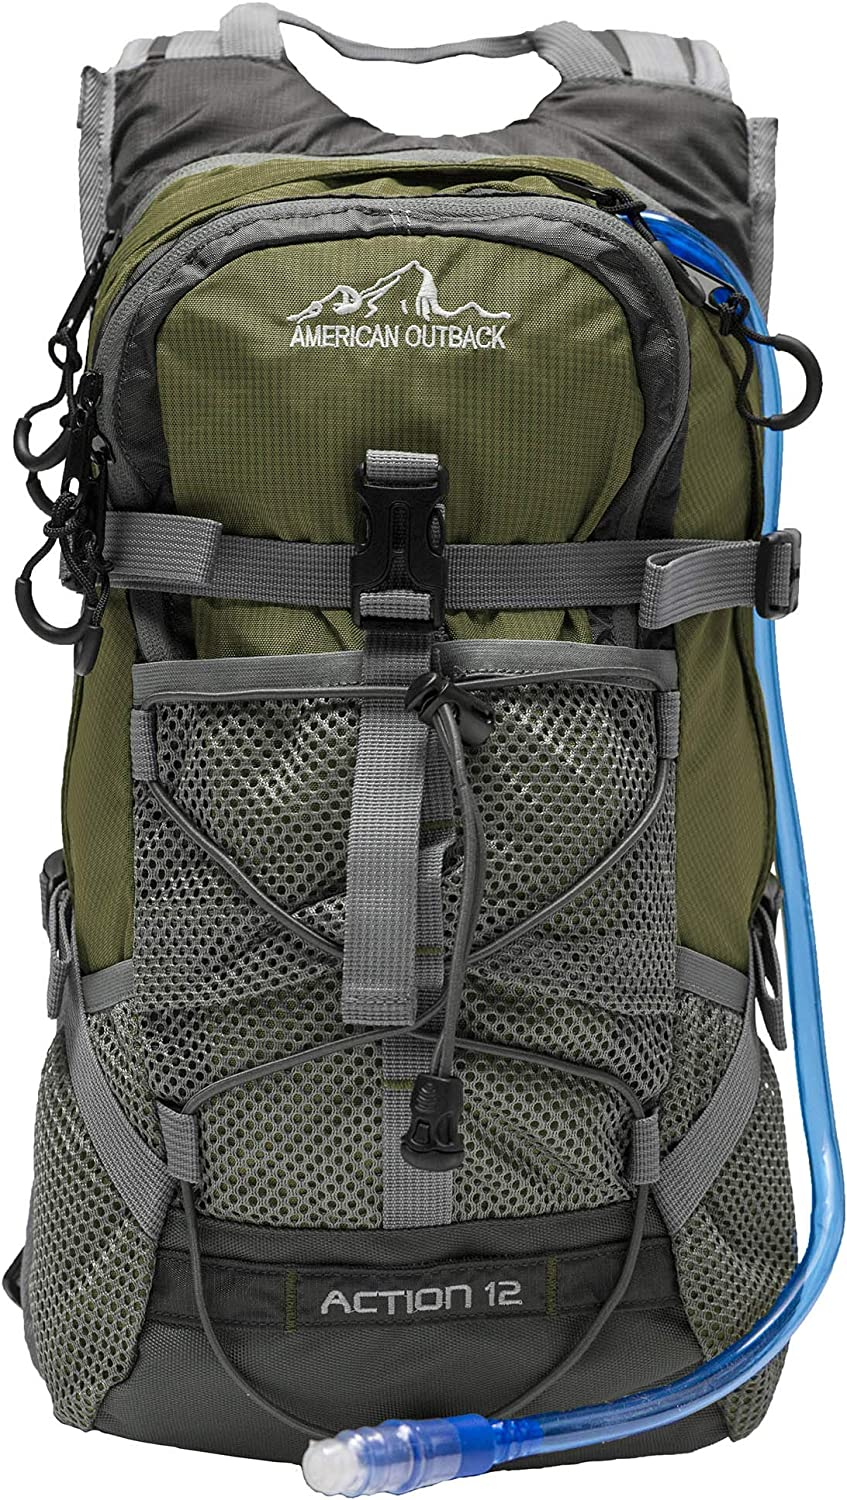 American Outback Chicago Mall Over item handling ☆ Diamond Hydration Backpack